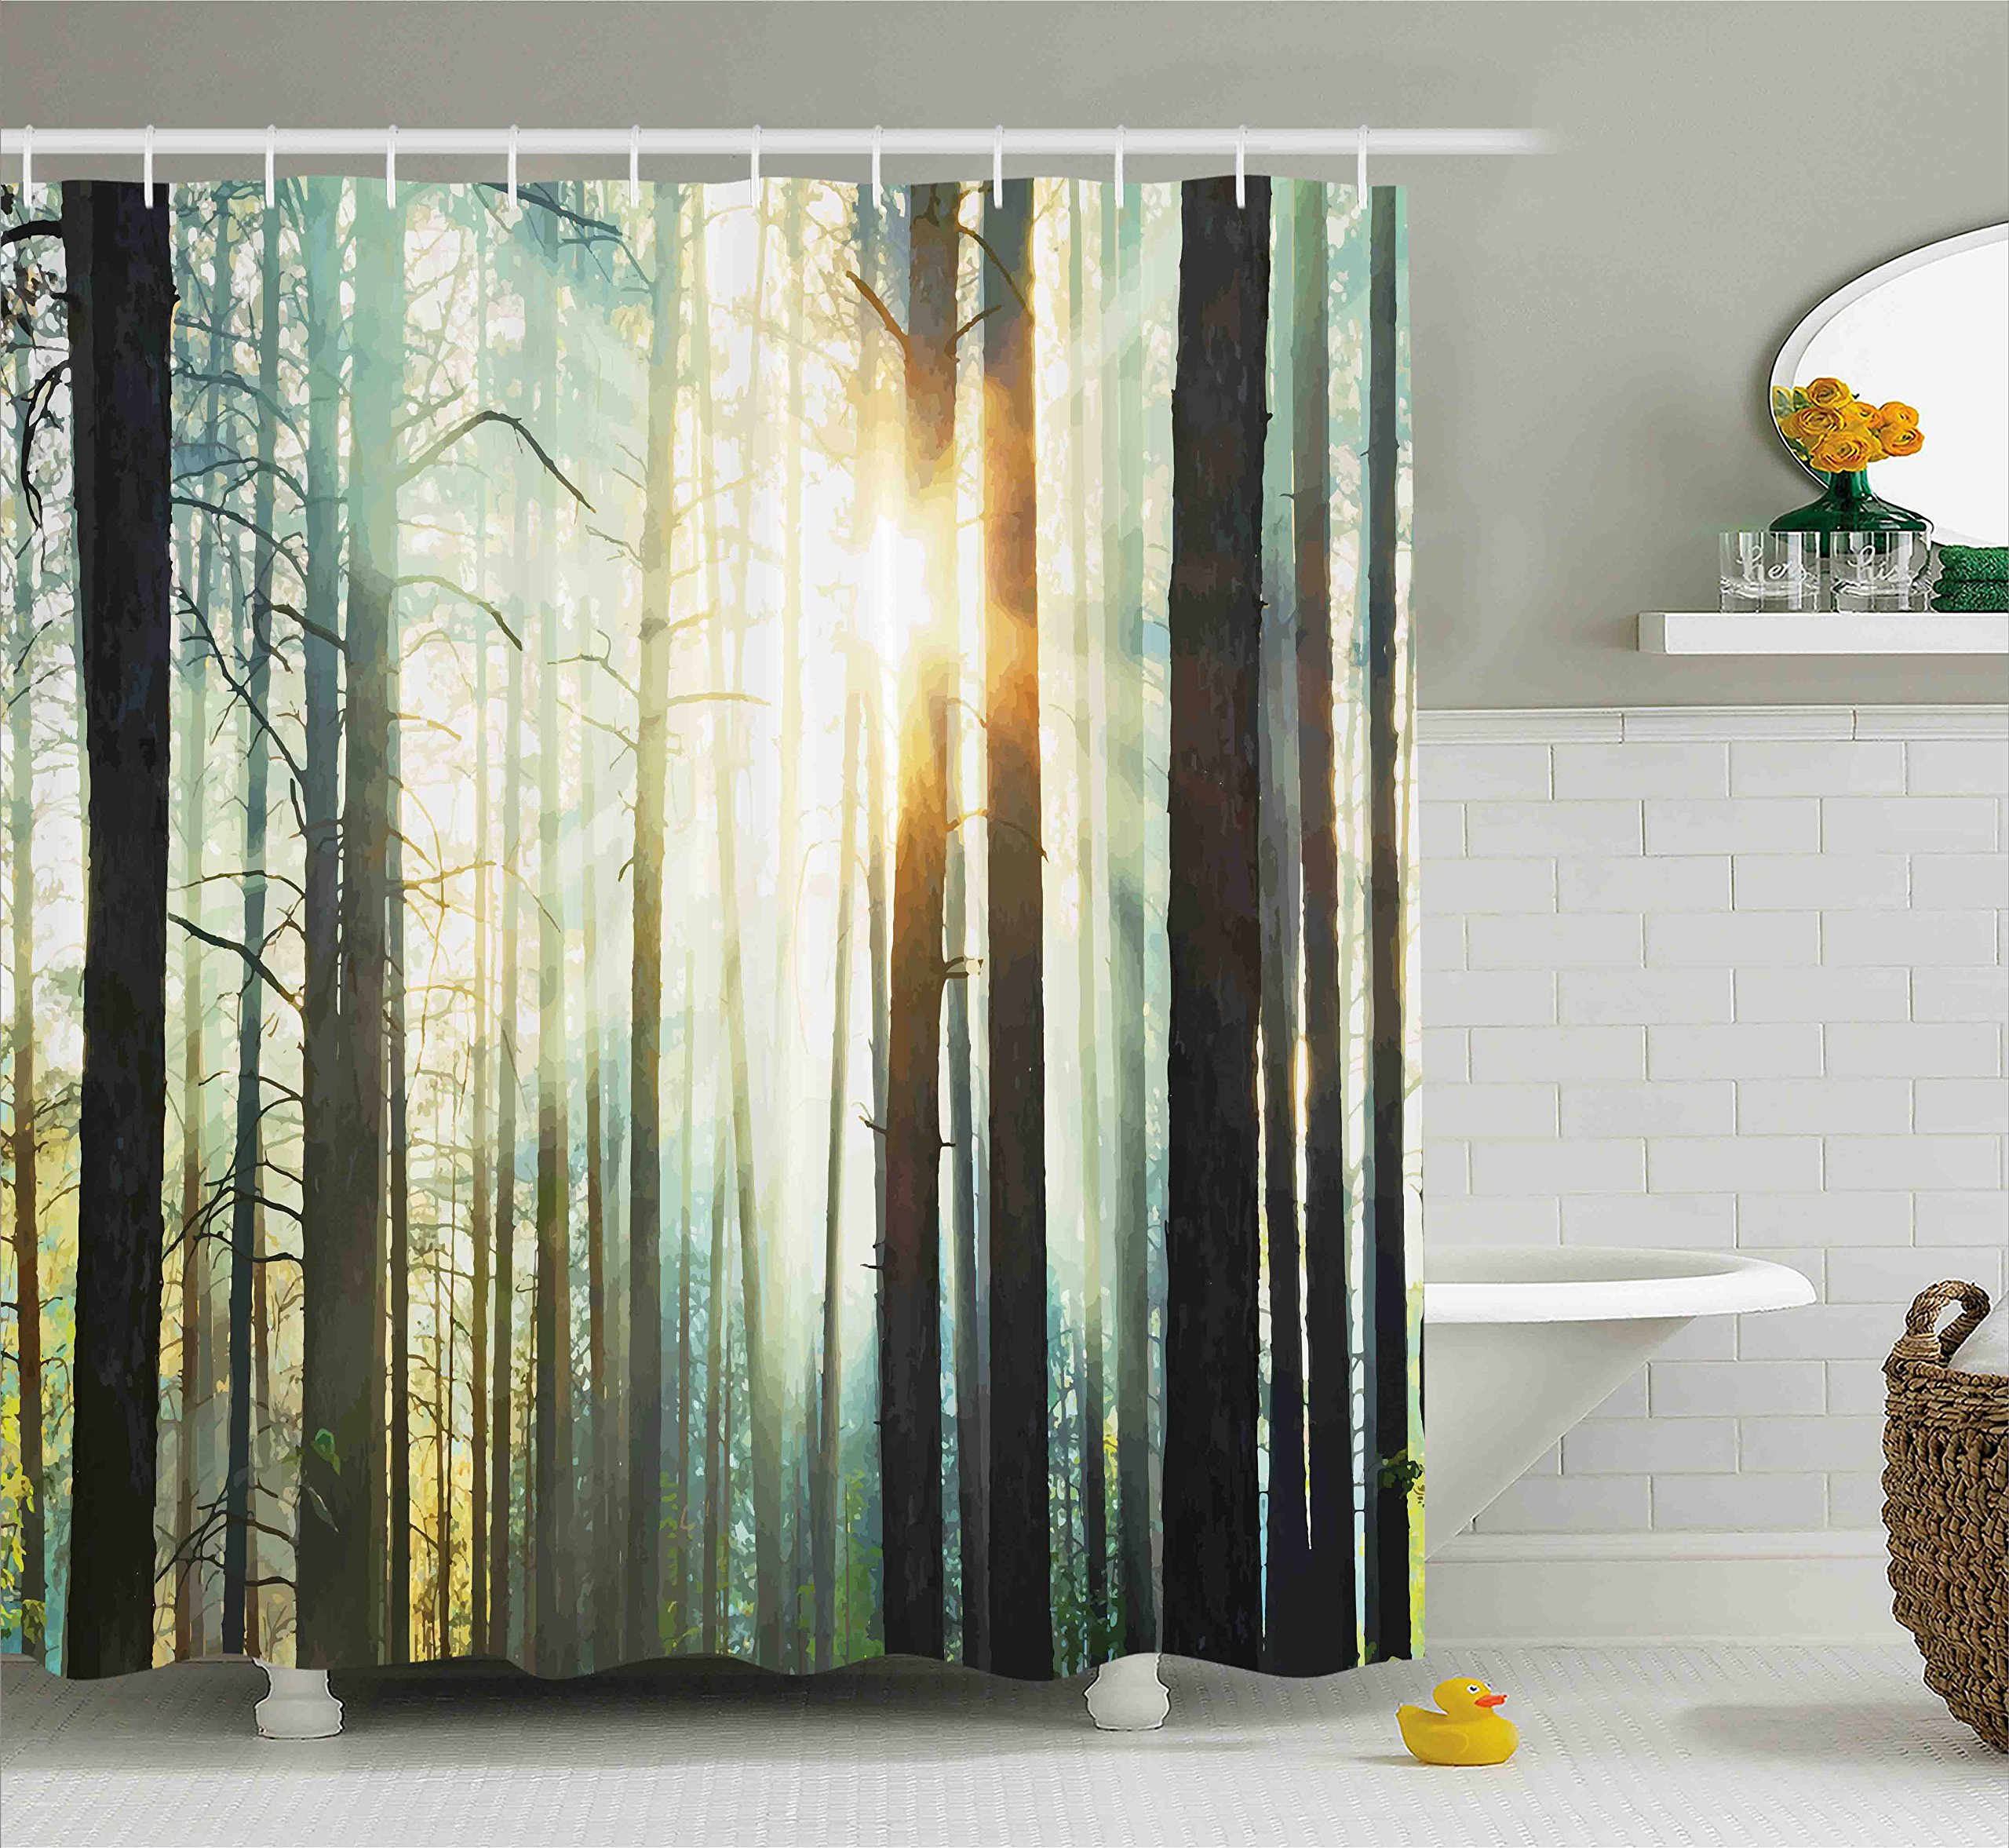 Ambesonne Nature Shower Curtain, Mist in The Enchanted Forest with Sunbeams Painting Effect Digital Art Image, Cloth Fabric Bathroom Decor Set with Hooks, 75'' Long, Dark Brown